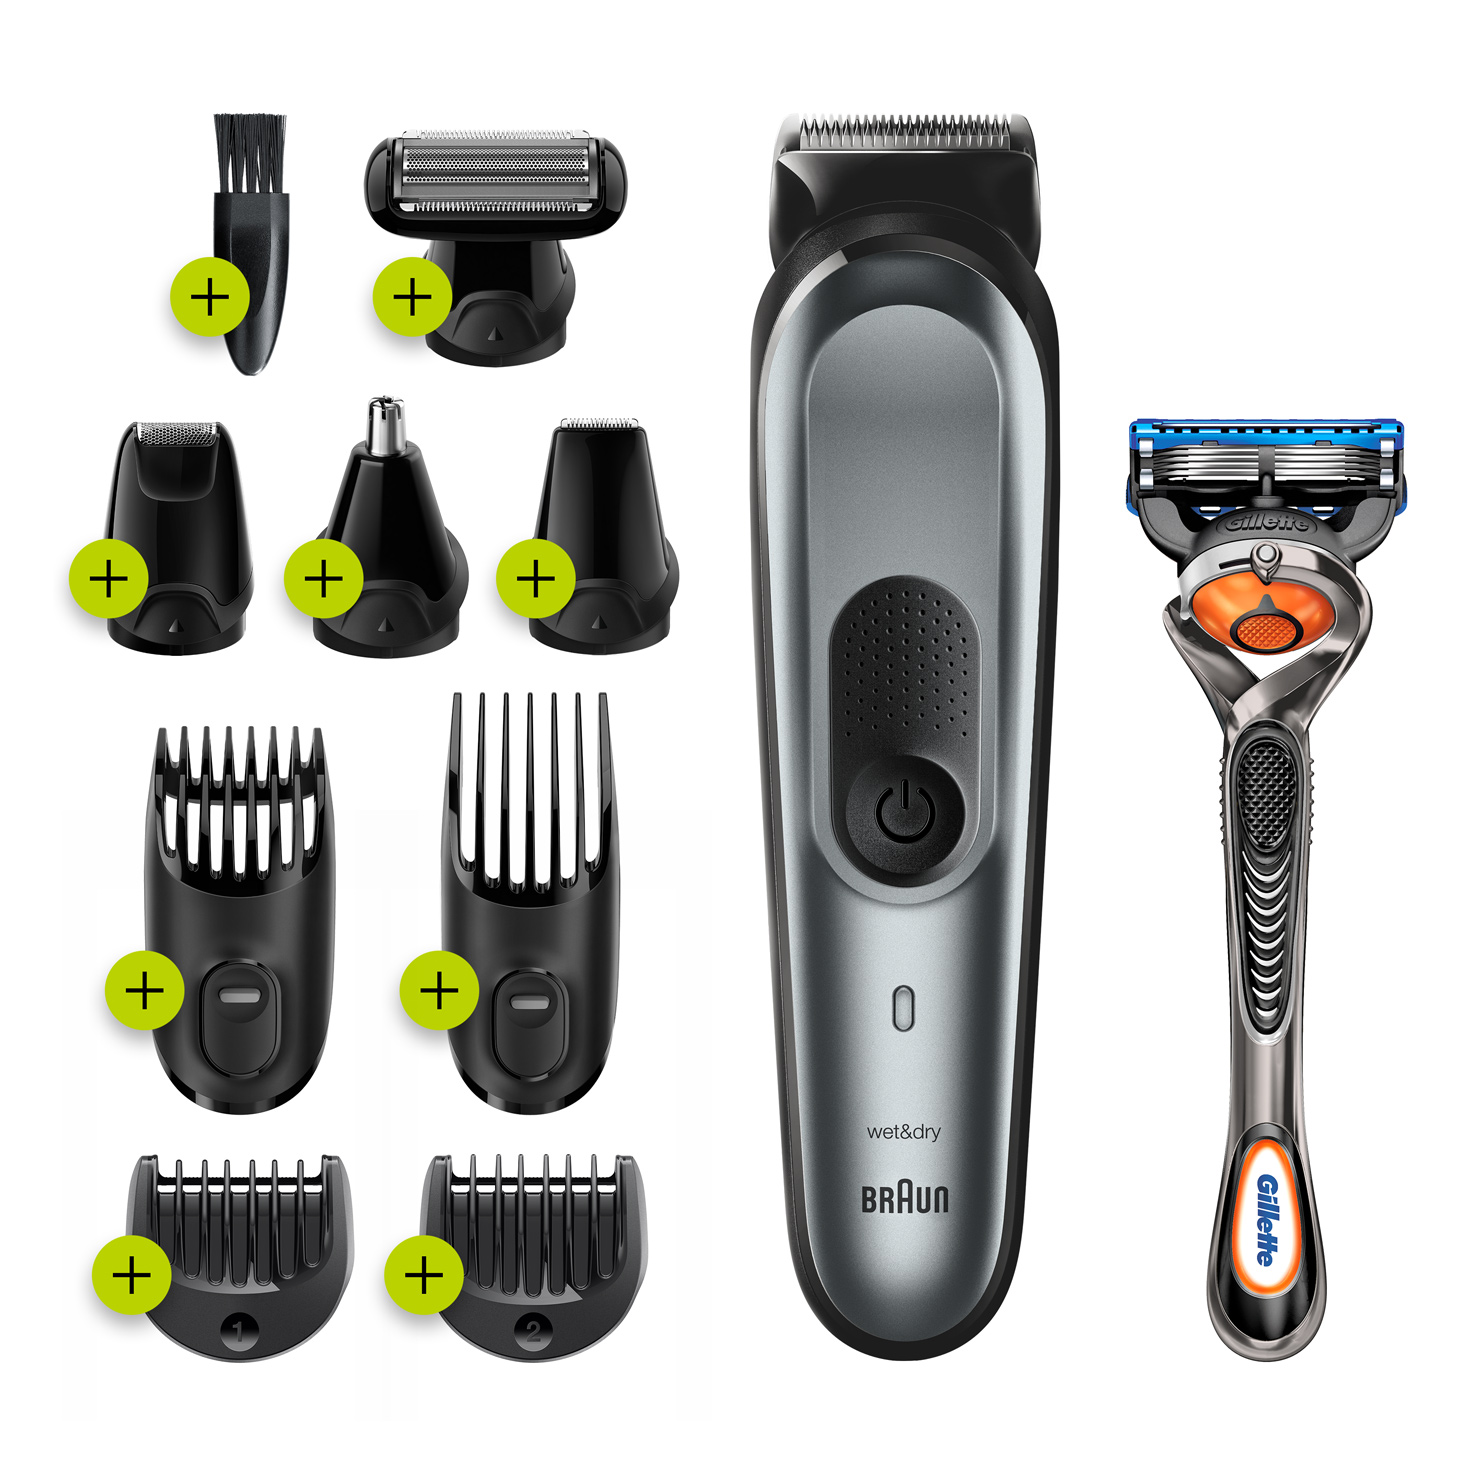 Braun All in one trimmer 7 MGK7221